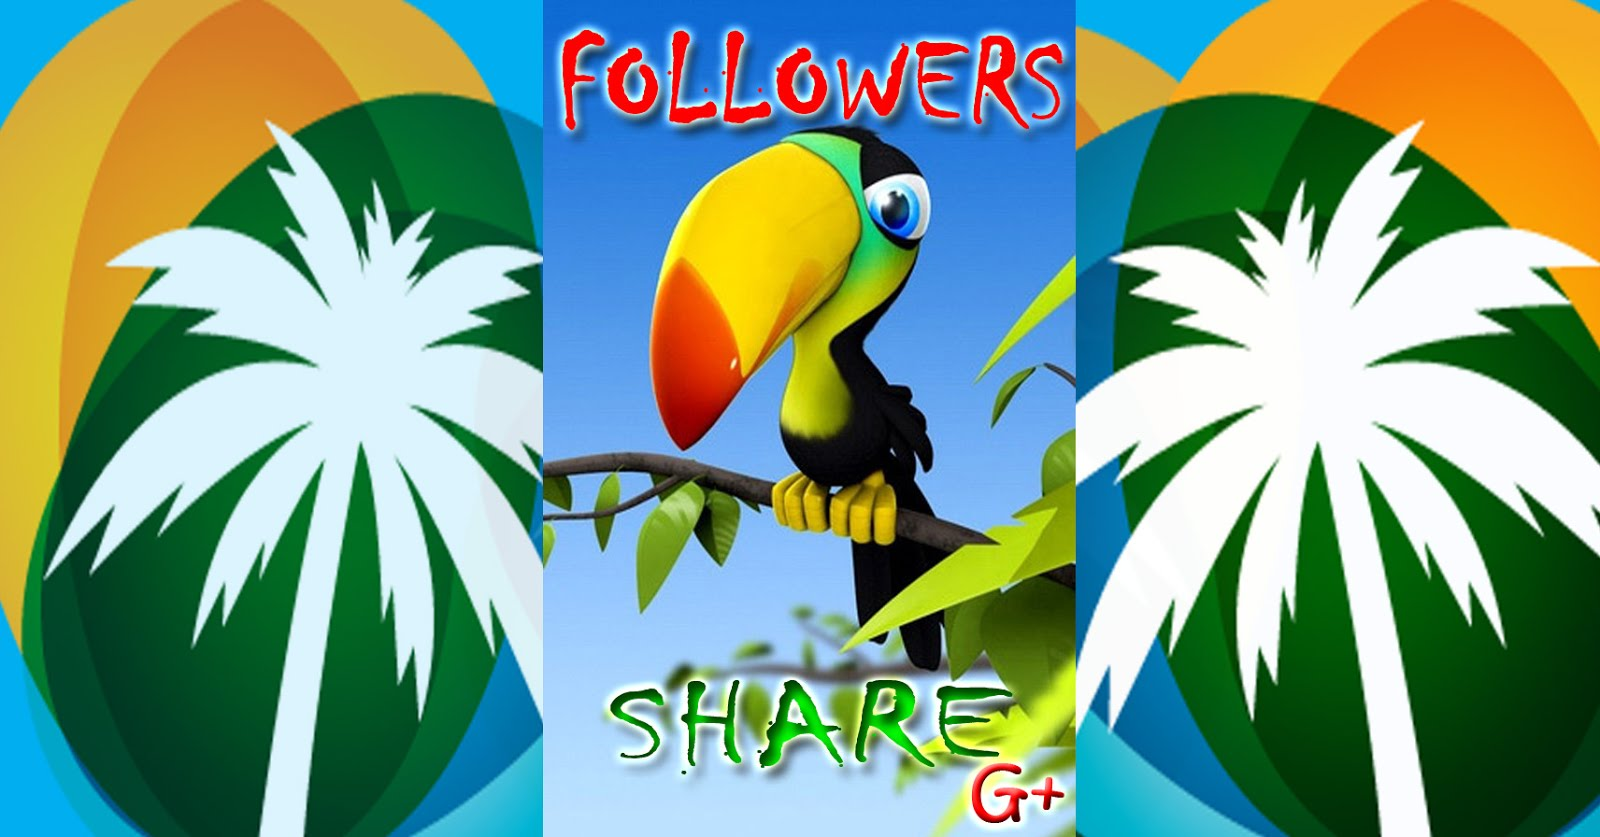 Followers & Share Community G+